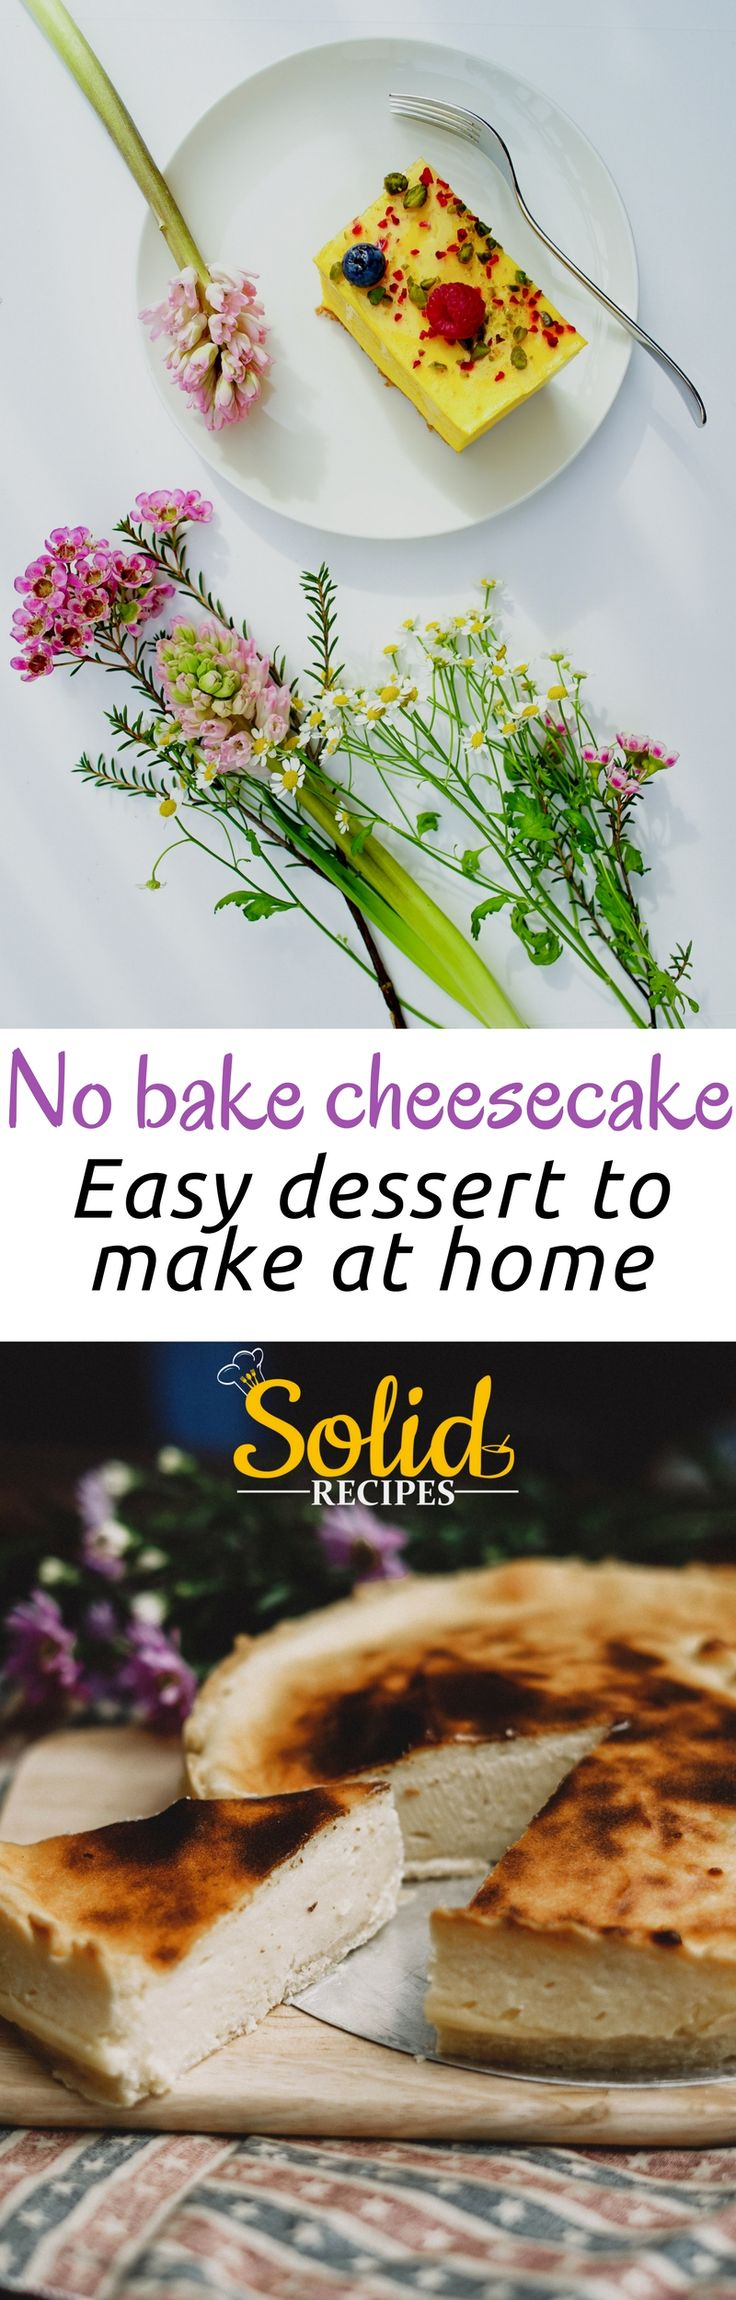 No bake cheesecake – easy dessert to make at home Not always the photos matched the recipe. Cheesecake recipes | cheesecake recipes easy | cheesecake bites | cheesecake recipes classic | cheesecake factory recipes | The Cheesecake Factory | Cheesecake.com | The English Cheesecake Company | Cheesecake Recipes | cheesecake recipes. | CHEESECAKE RECIPES |